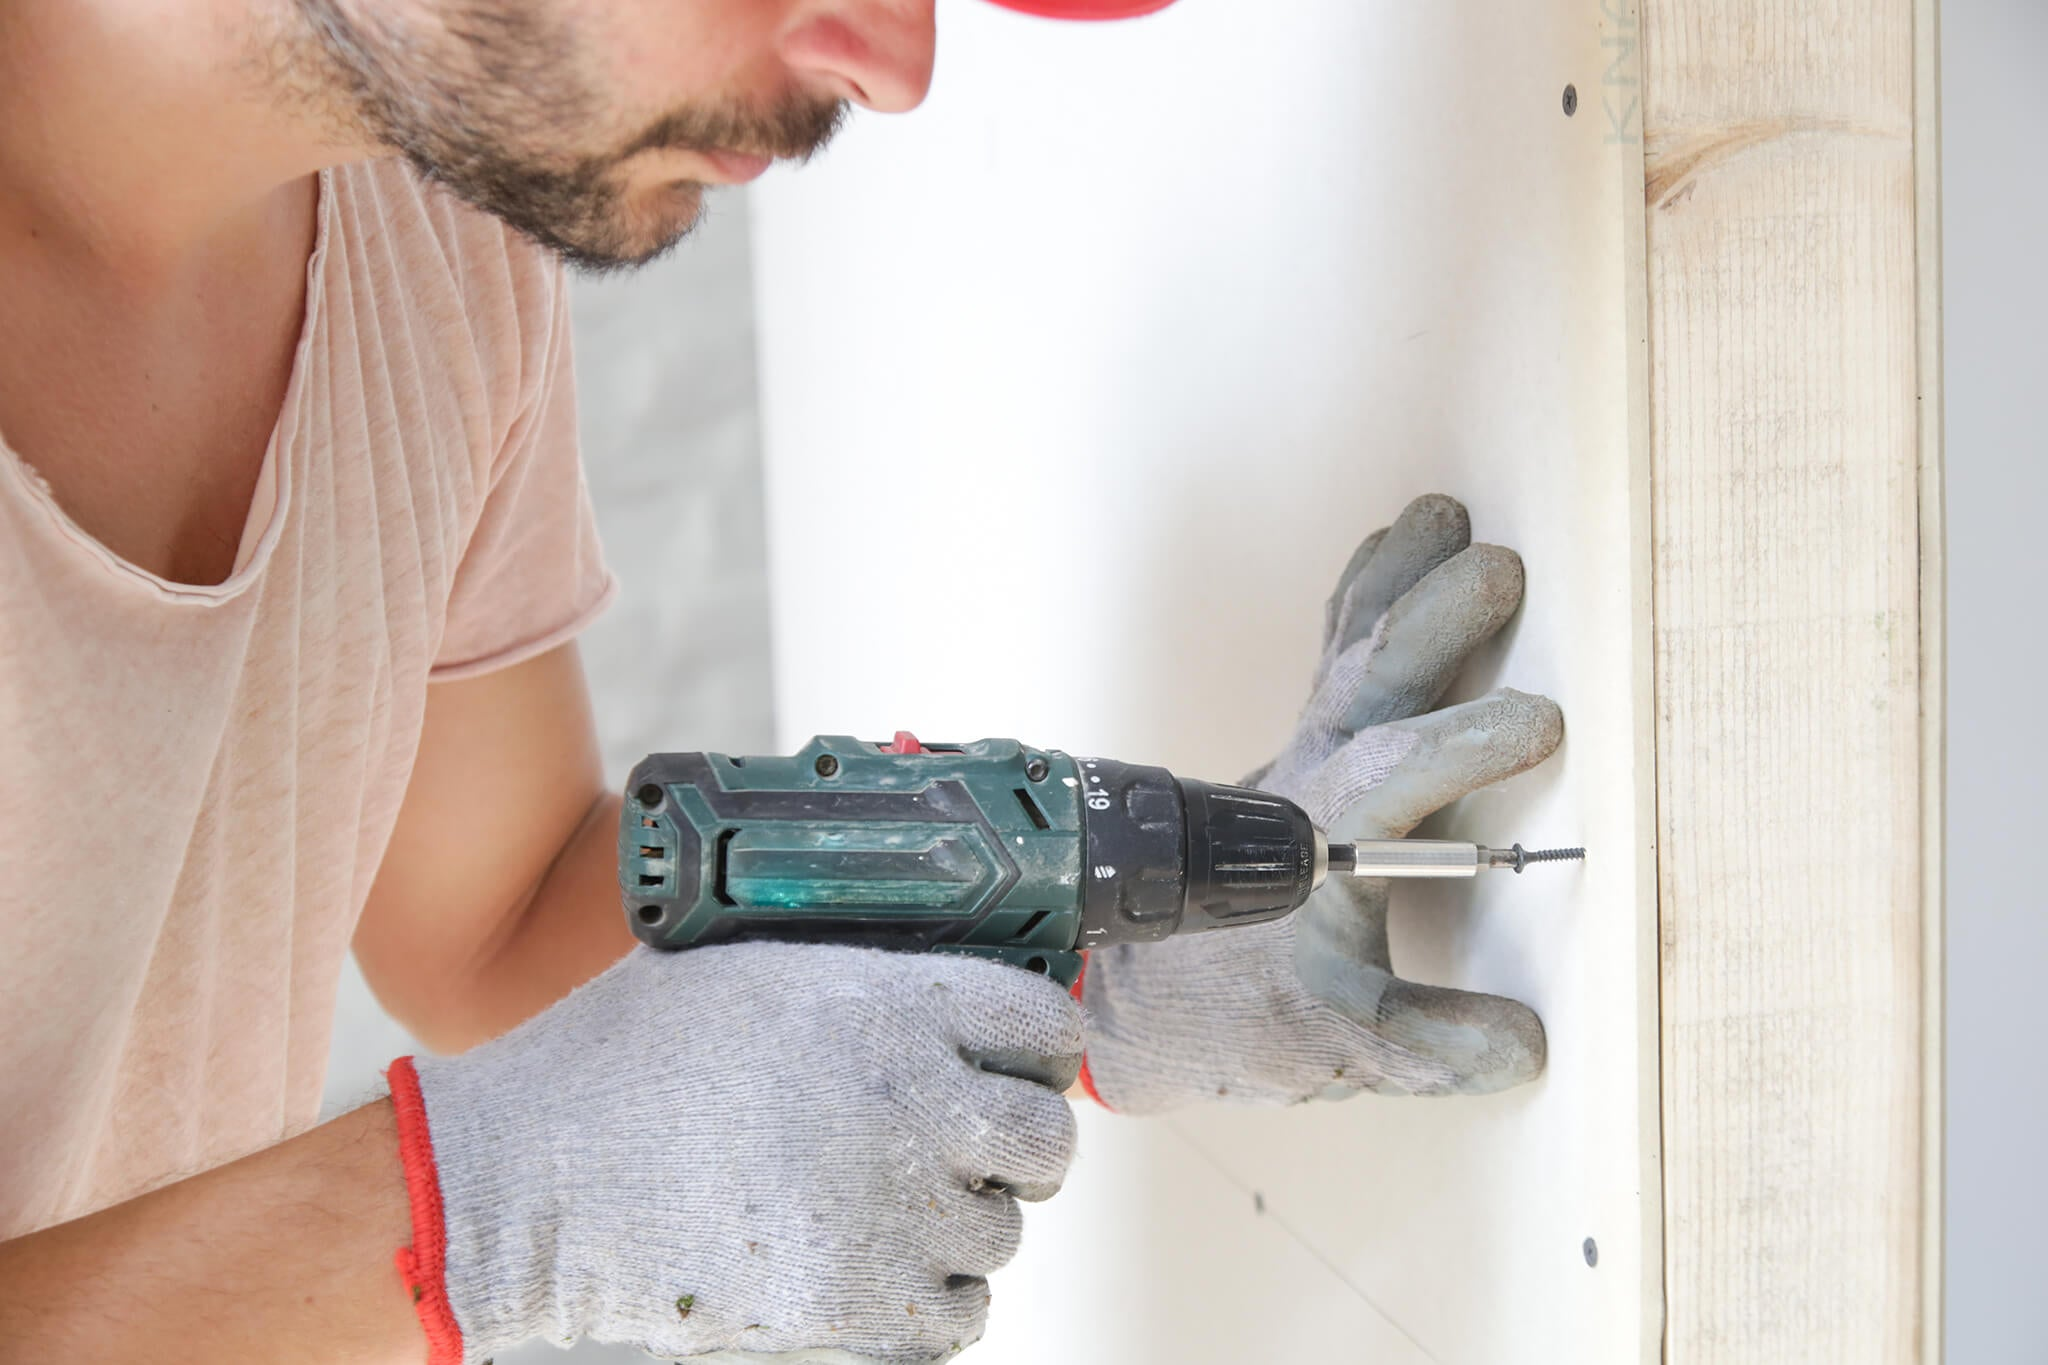 Driving Drywall Screws into the Drywall Sheets